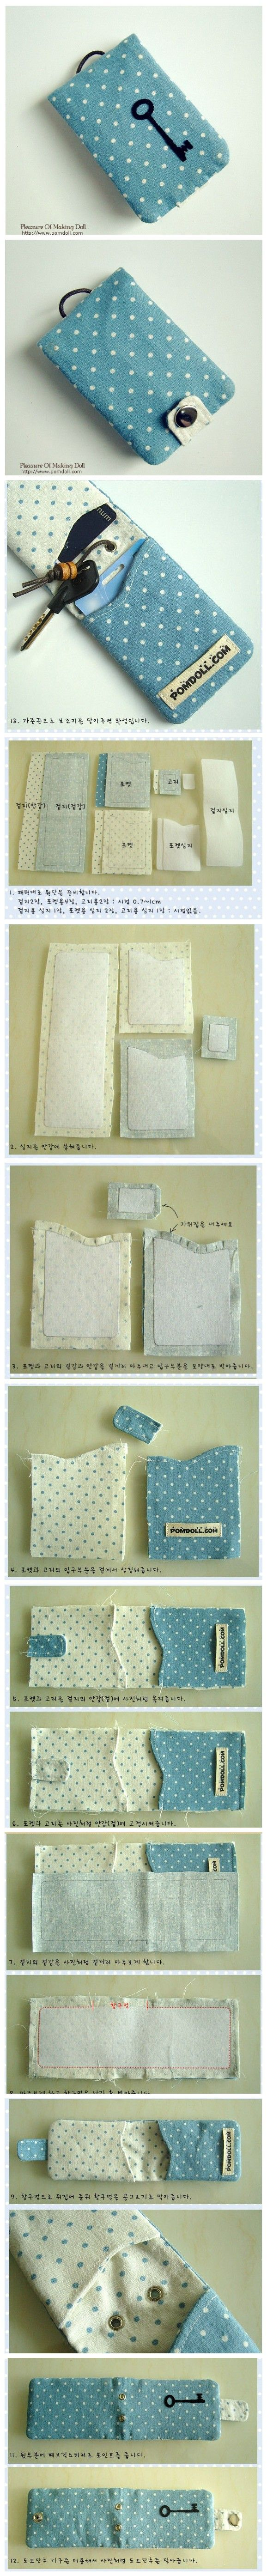 Key and card holder, tutorial is in Chinese, but pics should be enough